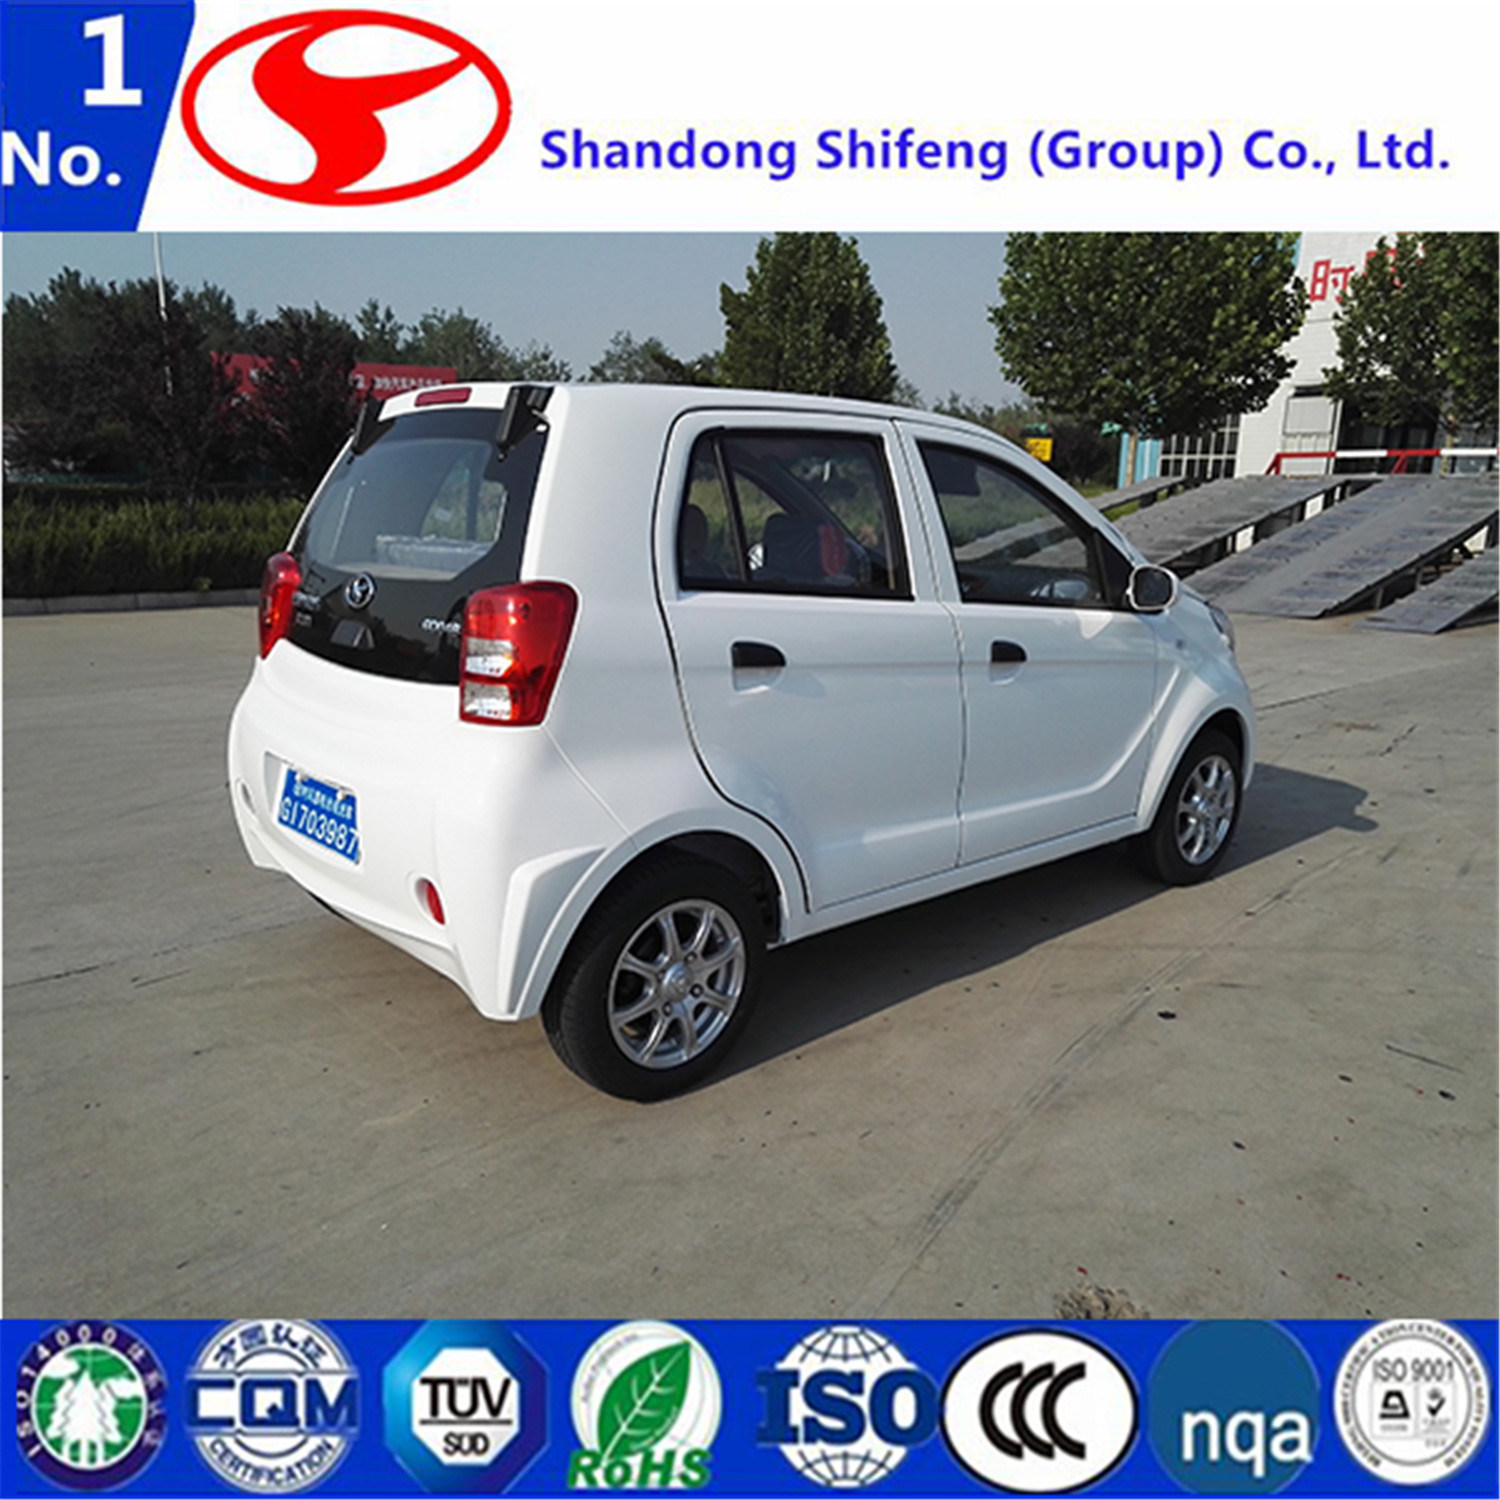 electric car motor for sale. China Hot Sale New Energy 4 Seaters Electric Cars For South America - Car, Electro Car Vehicle Motor